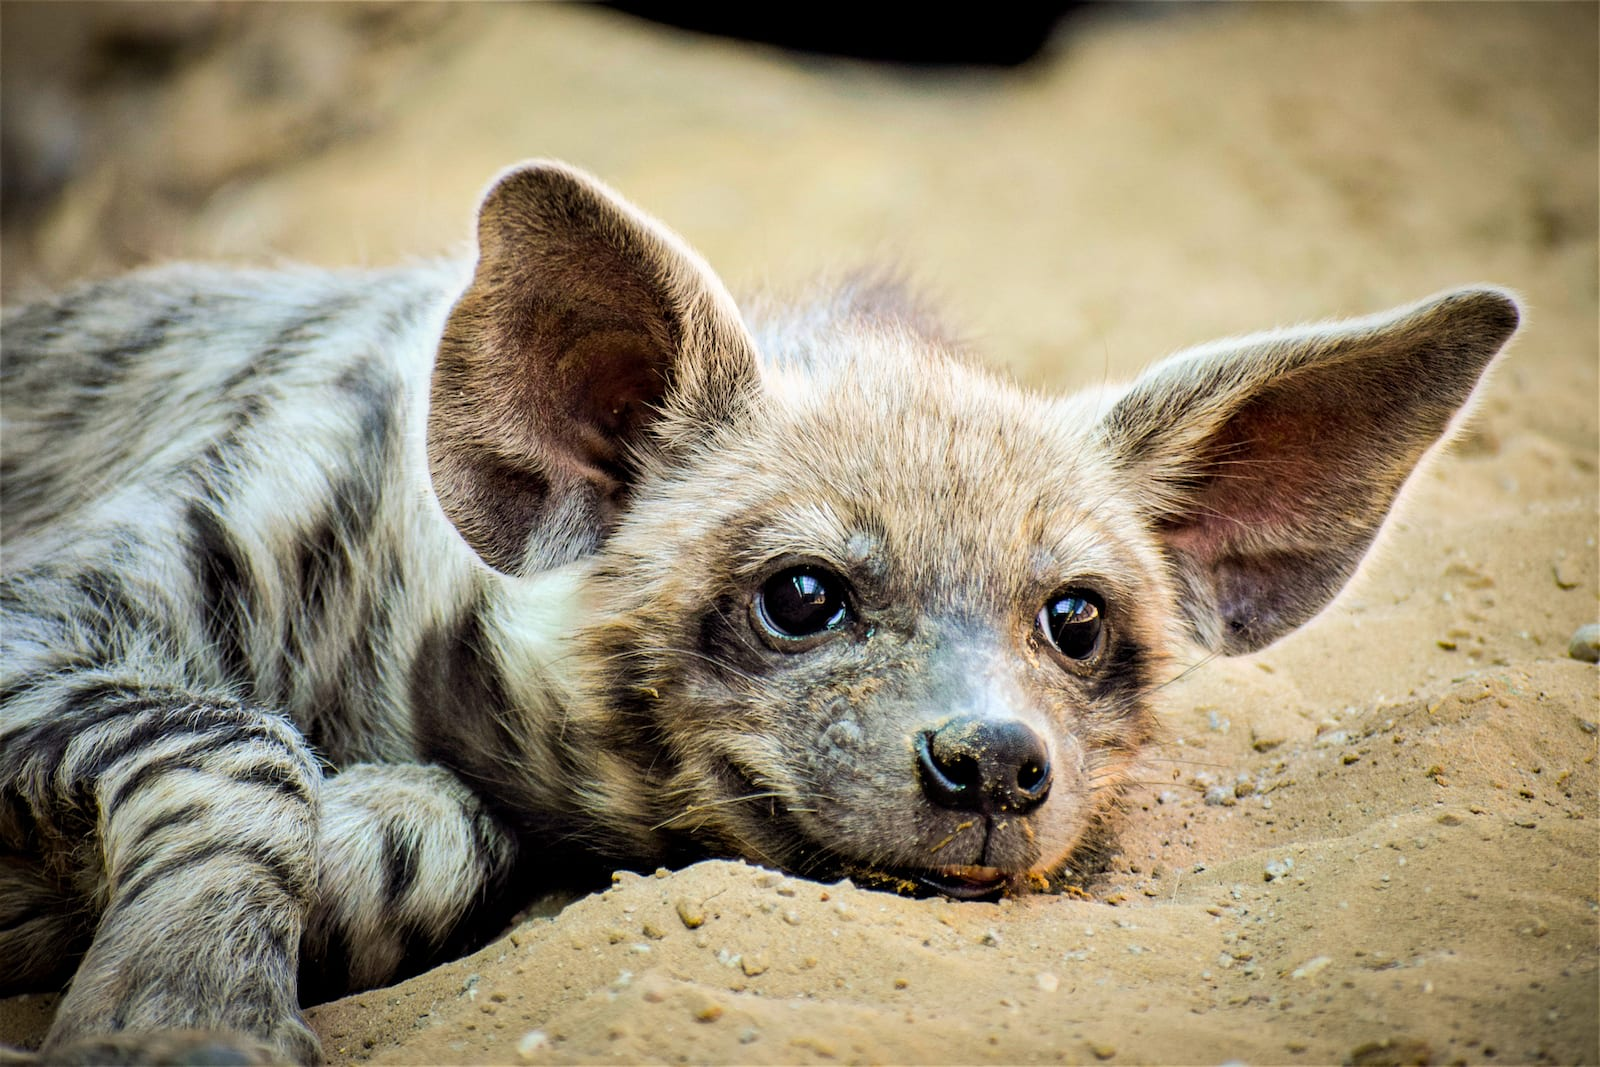 """A striped hyena litter typically comprises two to four cubs, who begin to venture out of their den when they're around one month old. This cub seems lost in deep happy thoughts outside its den. It was one of two that Bishnoi had the pleasure of observing. """"I use a zoom lens and stay absolutely still while photographing hyenas or jackals to ensure that I do not spook them,"""" he says."""